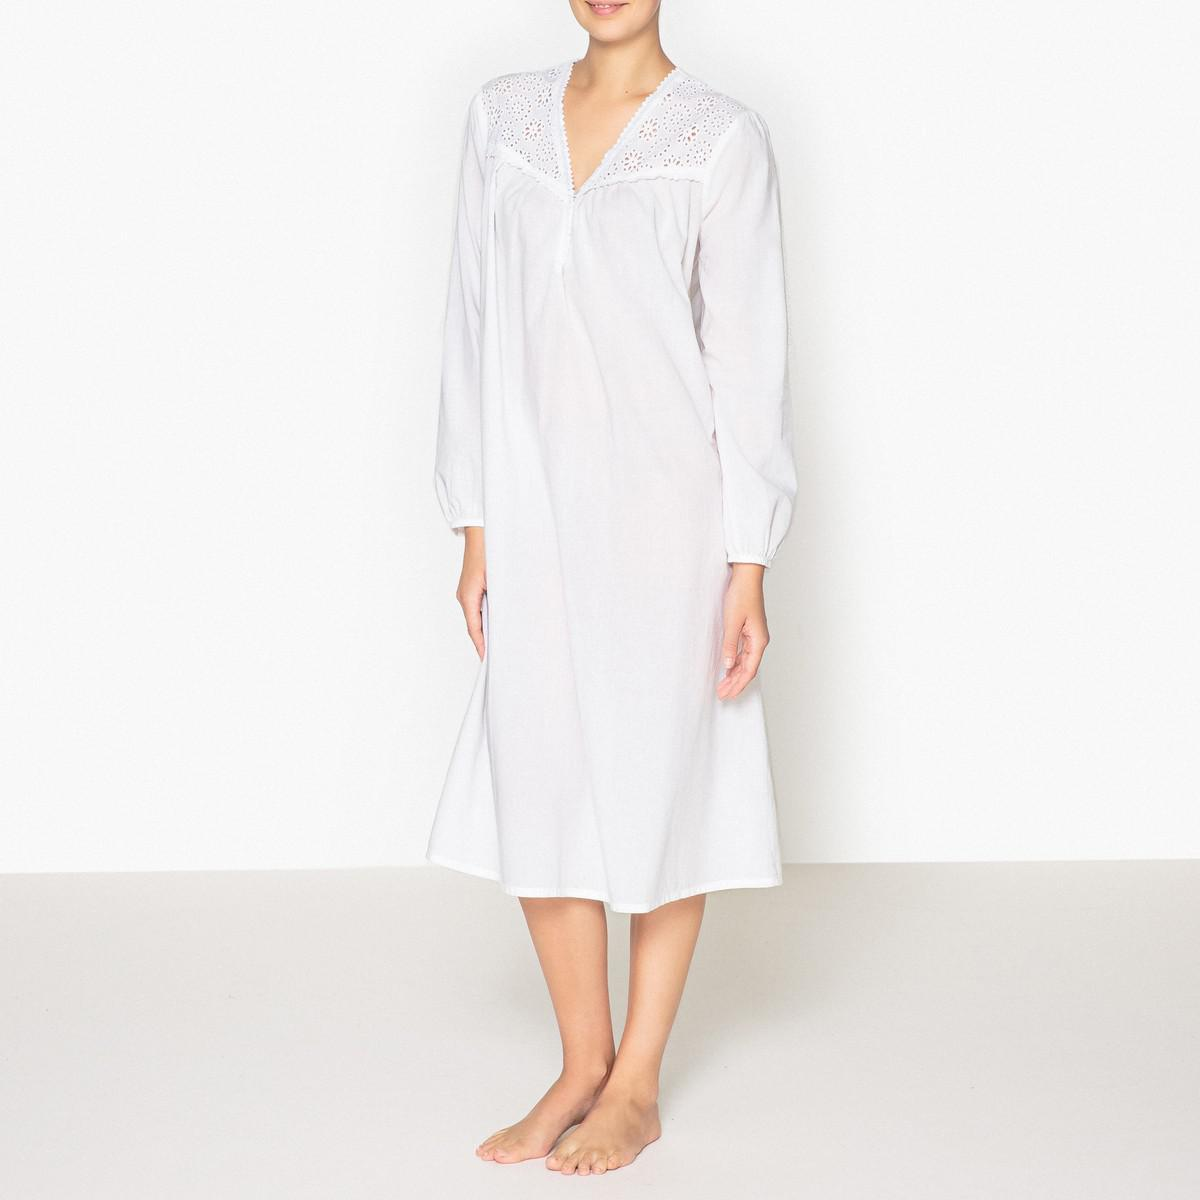 19e4435070 Lyst - La Redoute Nightshirt in White